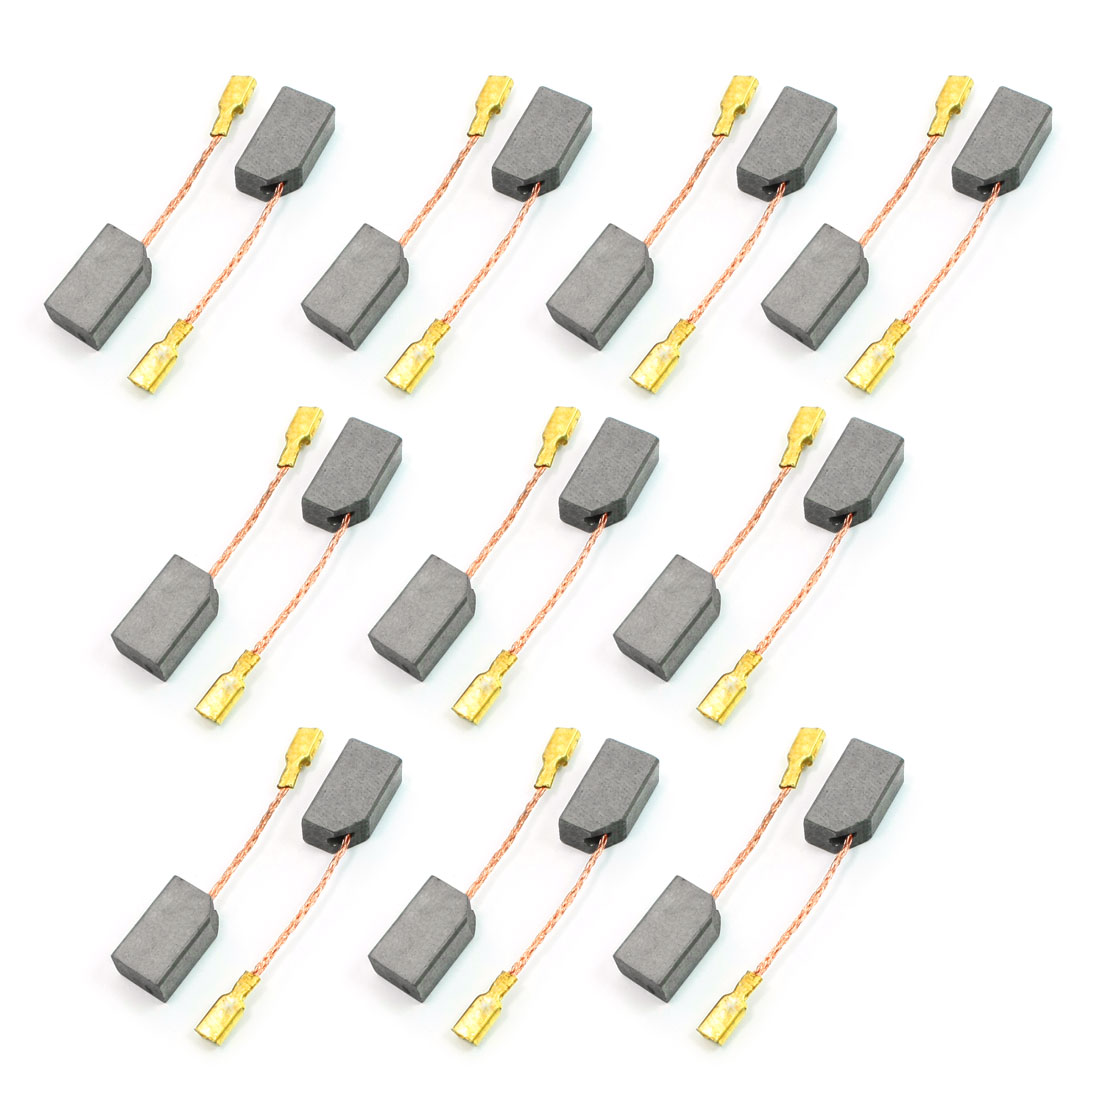 14mm x 8mm x 6mm Motor Carbon Brush Motorcarbon 10 Pairs for Dewalt 100